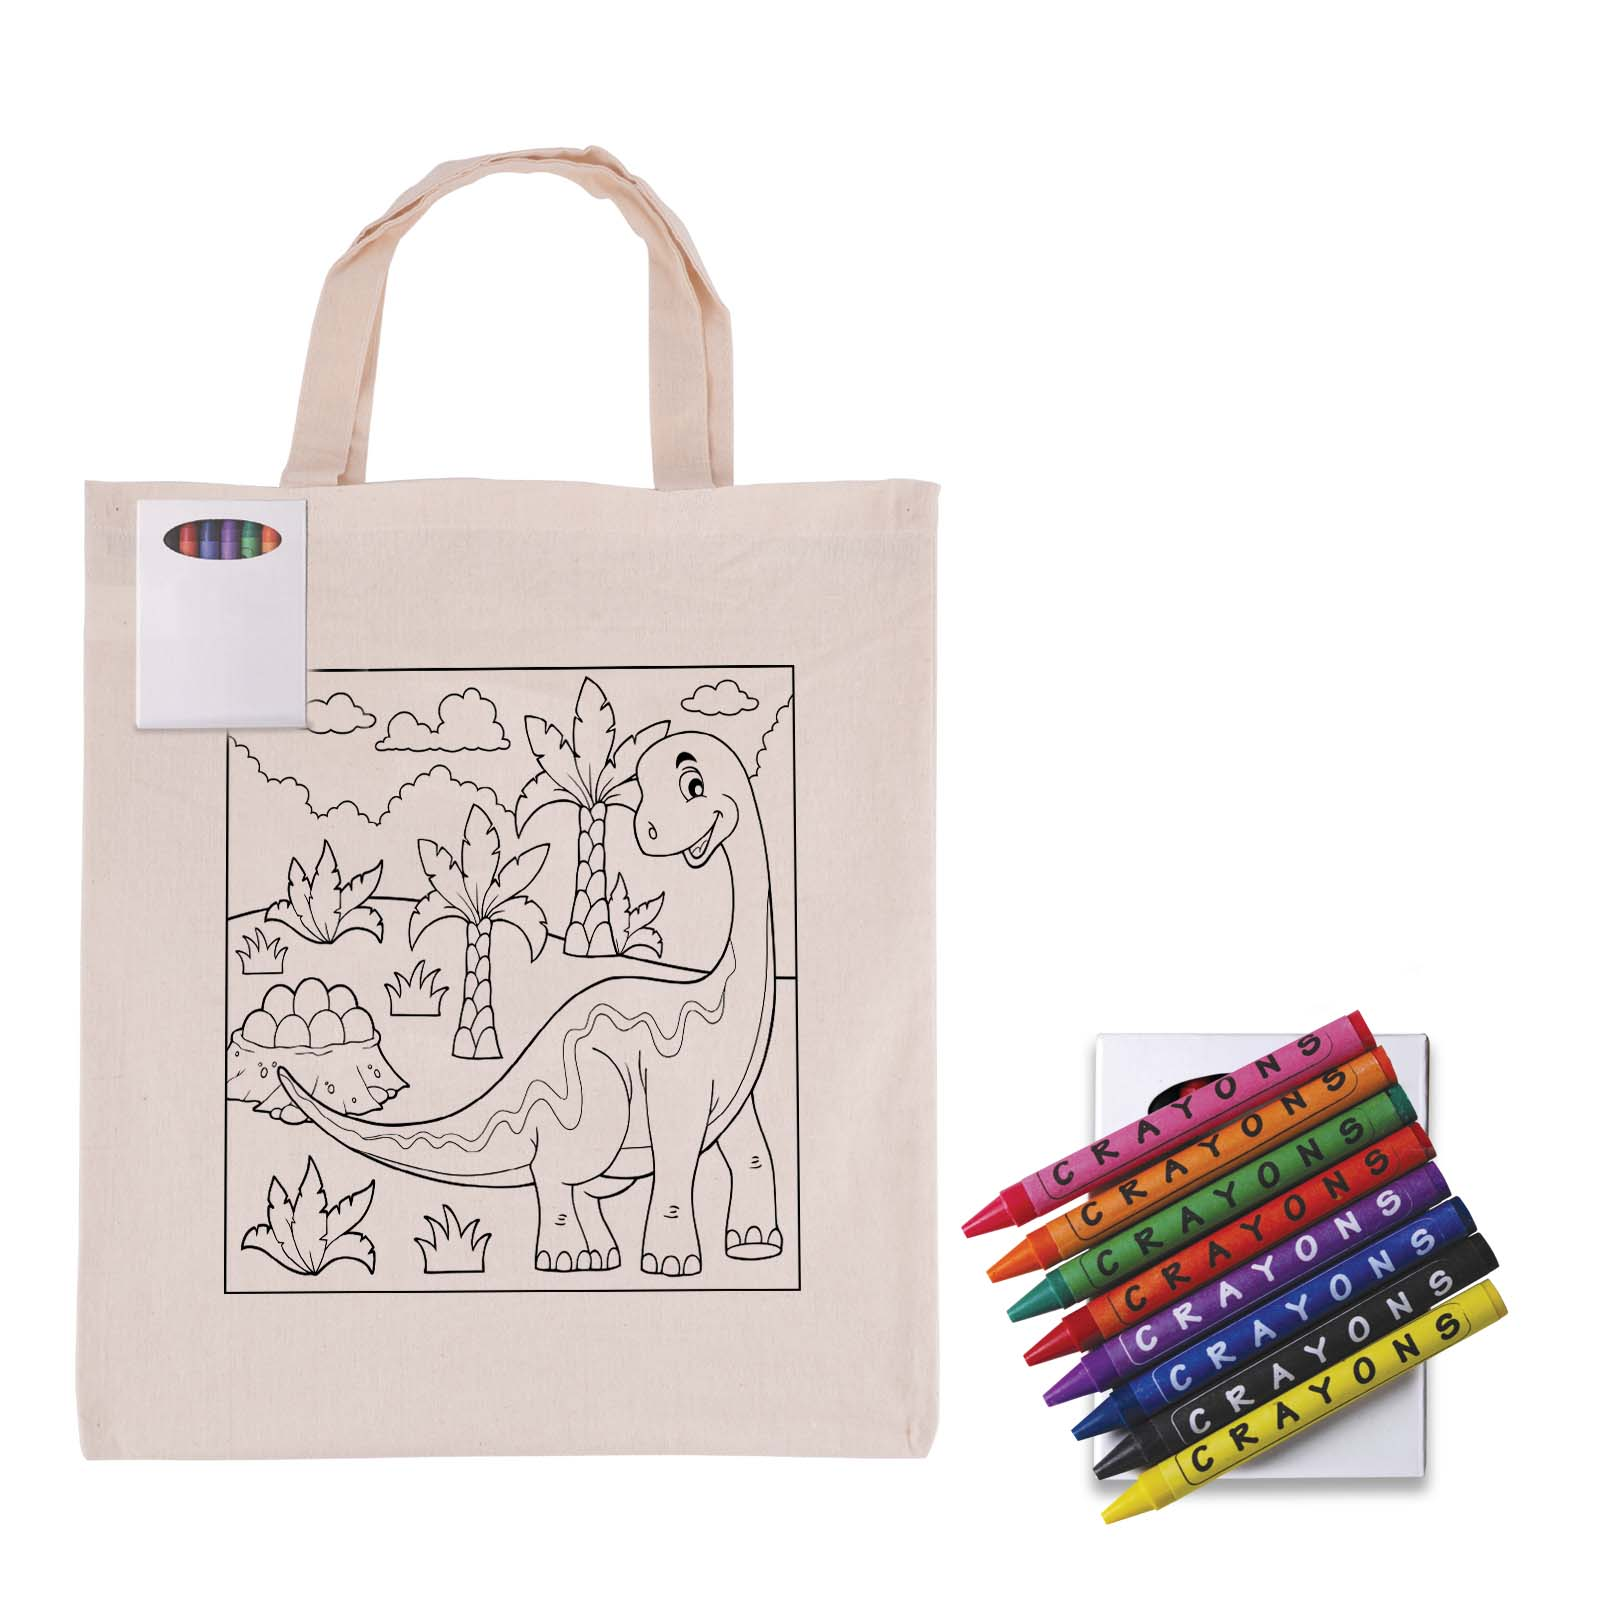 Colouring Calico Short Handle Bag with Crayons - 1 Col 1 Pos Print Bag + Digital Label Crayons